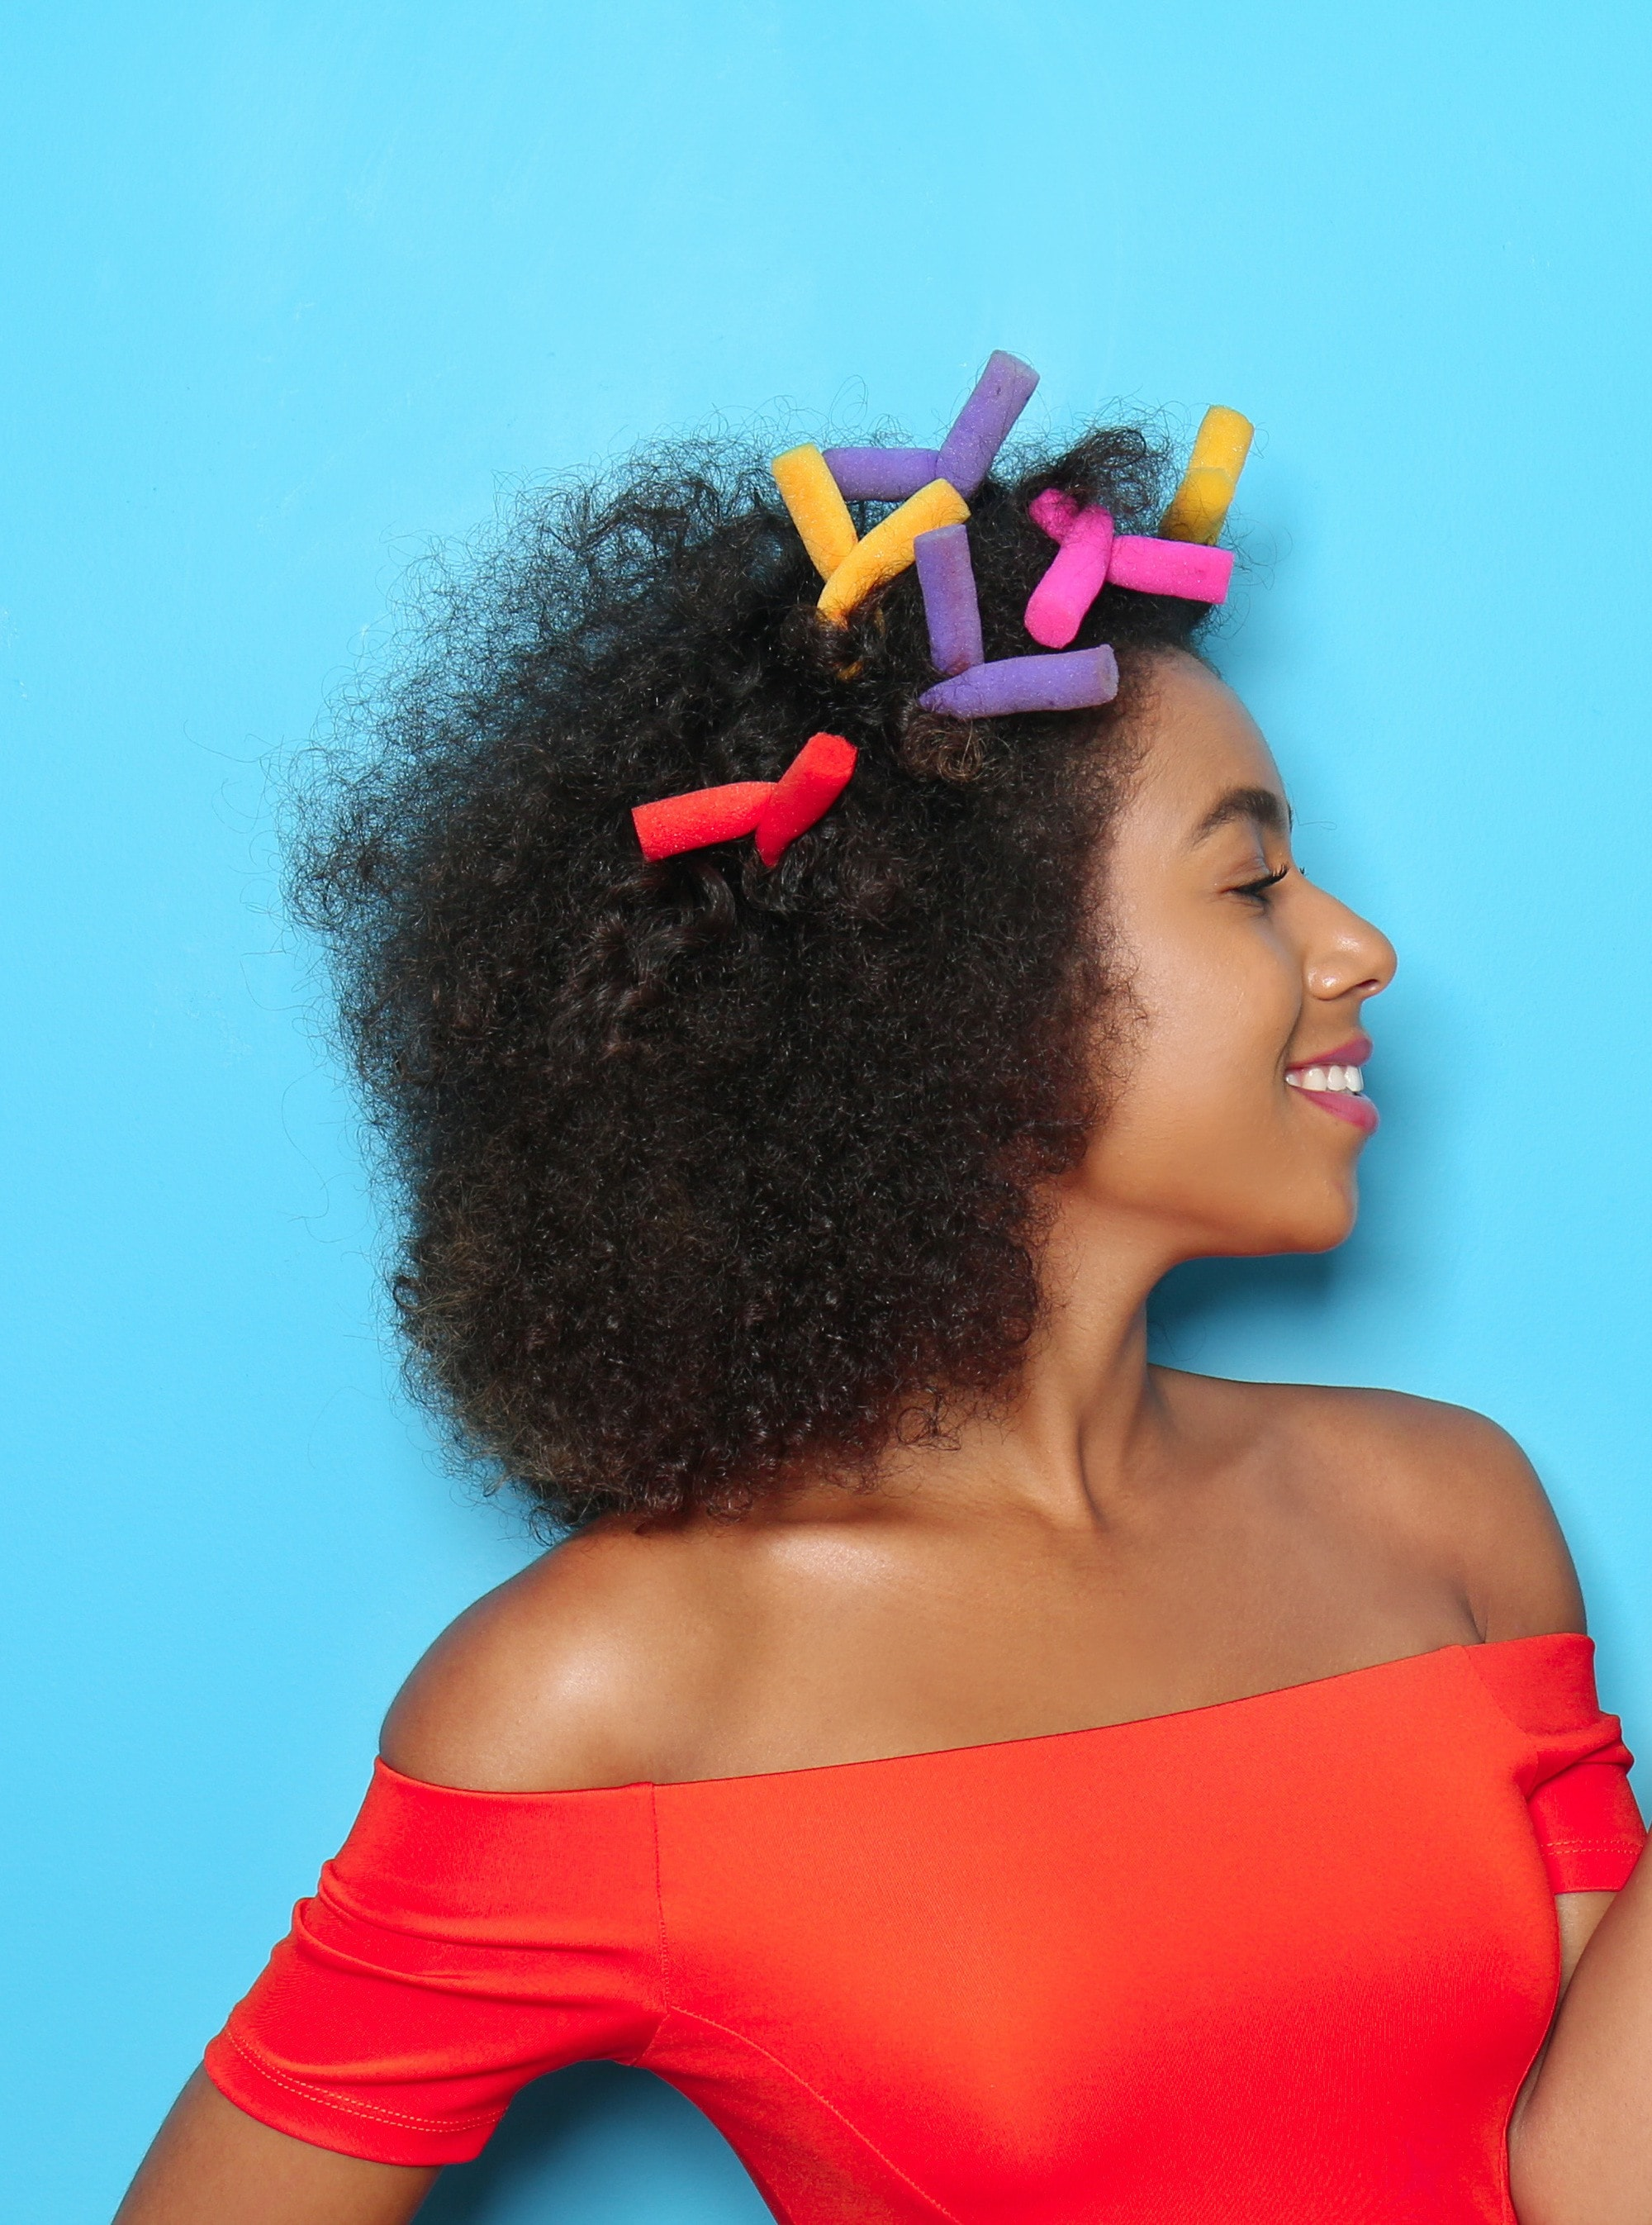 10 Types Of Hair Rollers For All Hair Types In 2020 All Things Hair